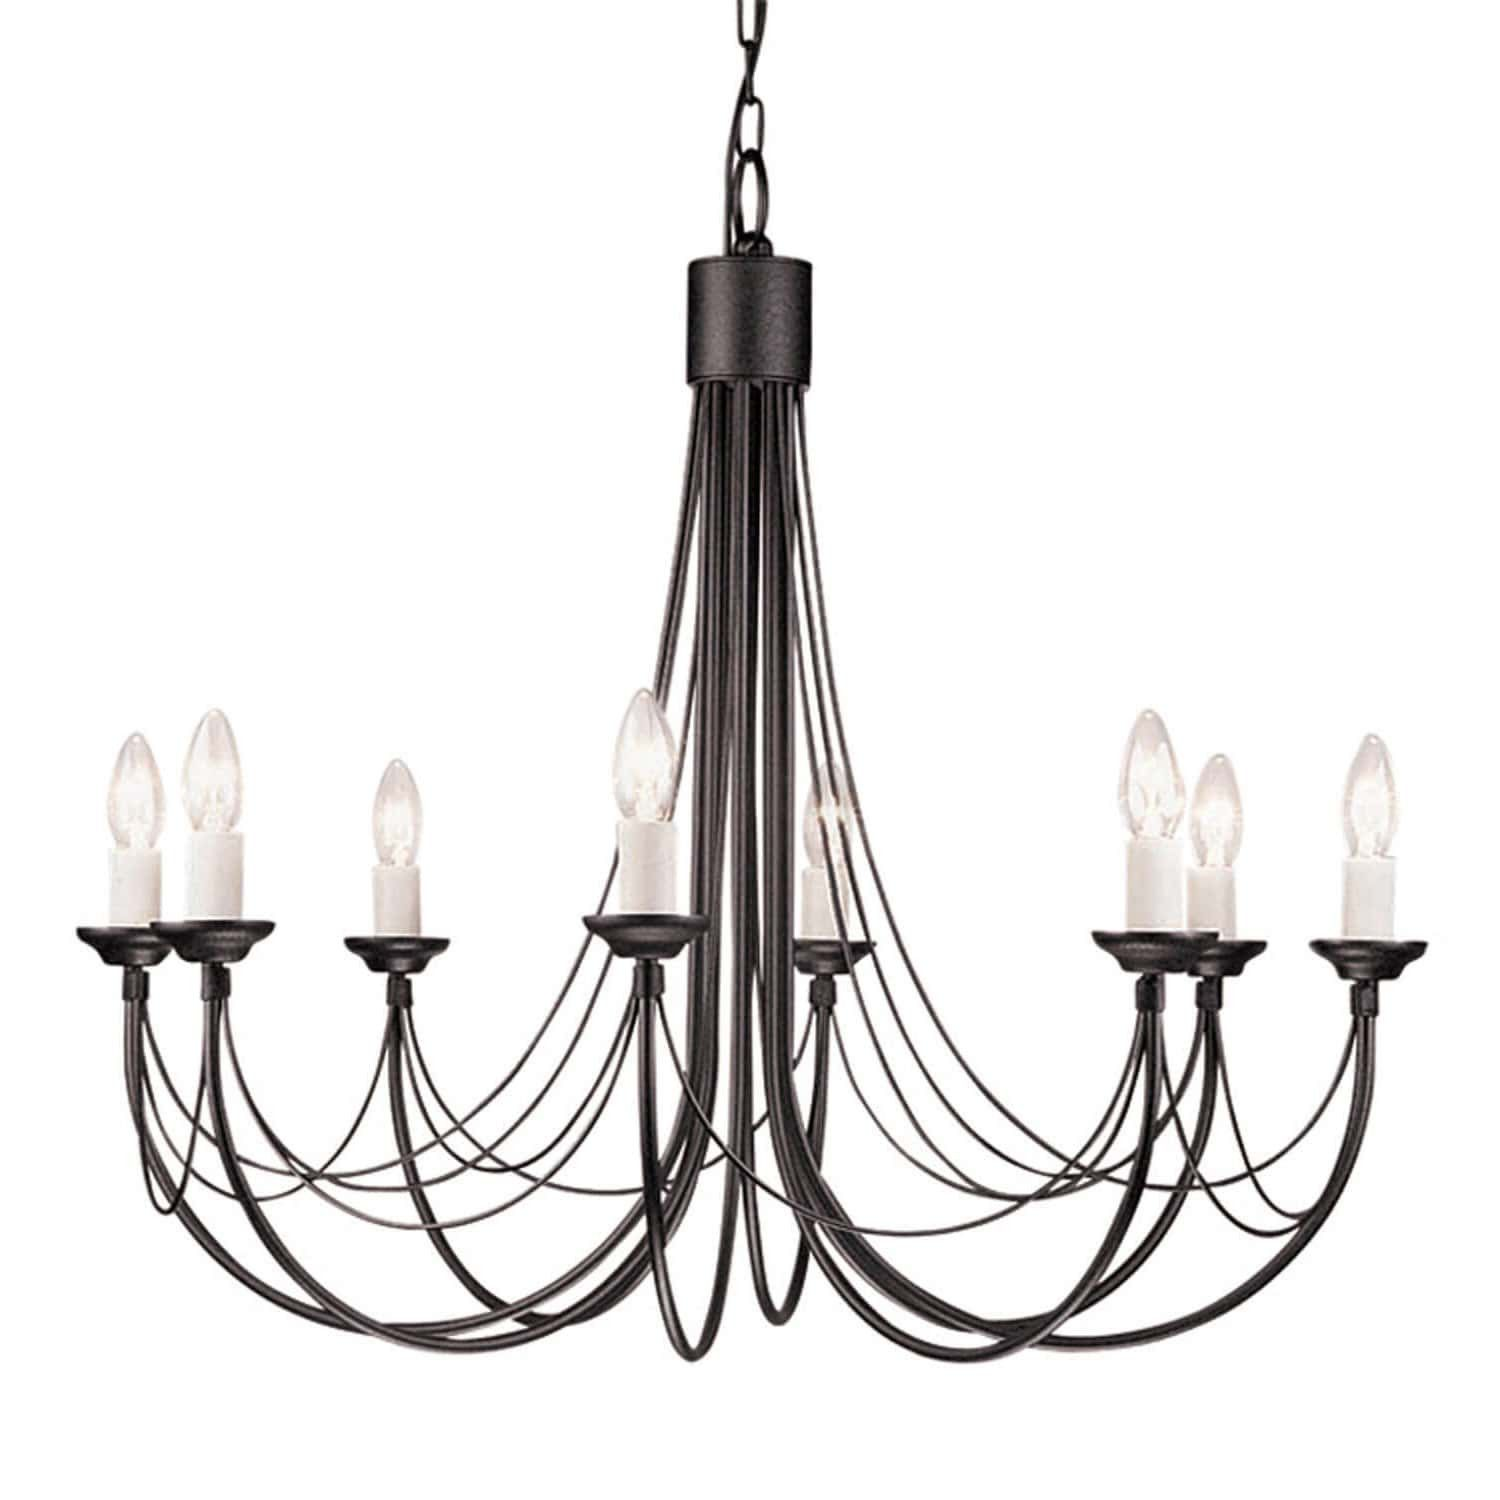 Elstead Carisbrooke 8 Light Black Candle Chandelier Black Candle